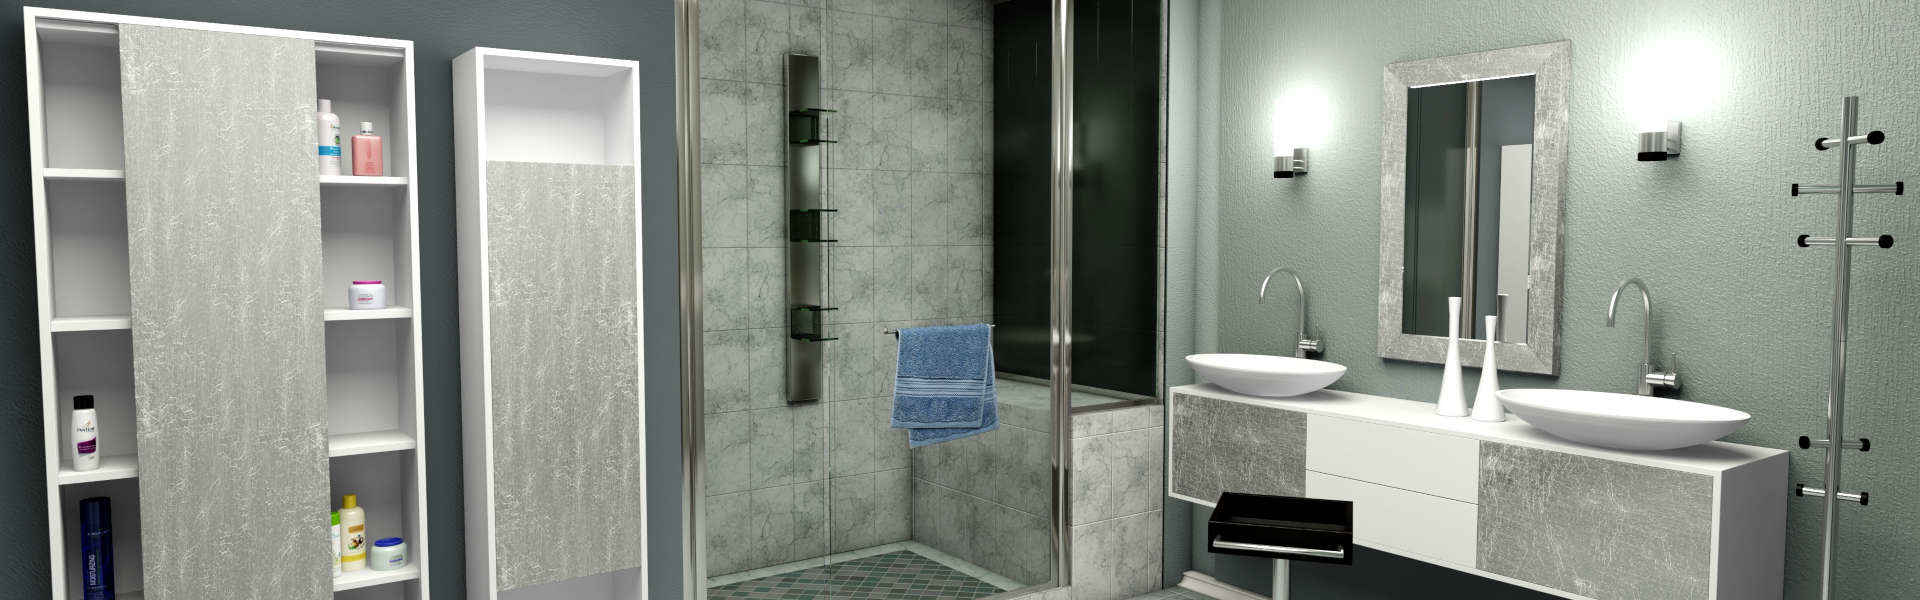 Ulladulla Shower Screens & Glass